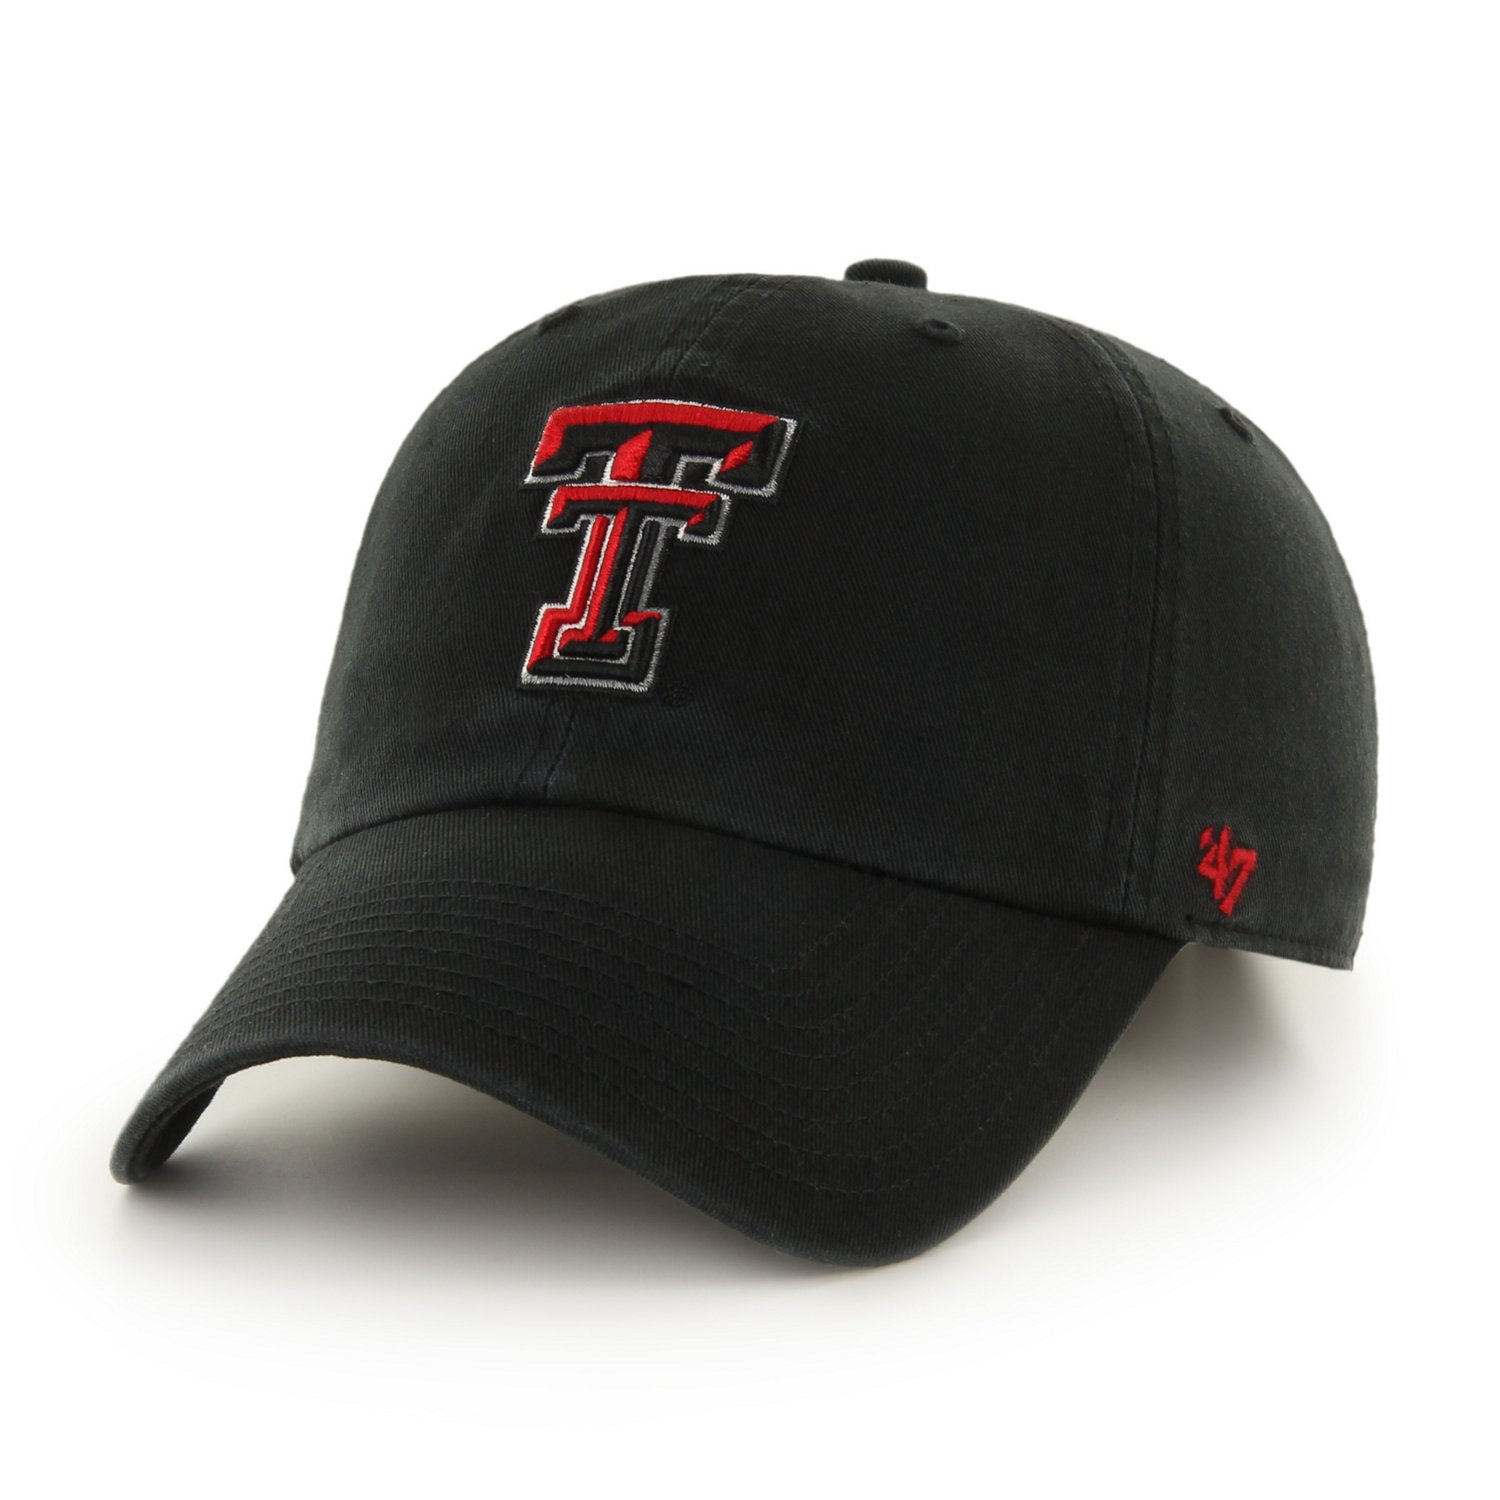 info for e1711 9e306 Display product reviews for  47 Men s Texas Tech University Cleanup Cap